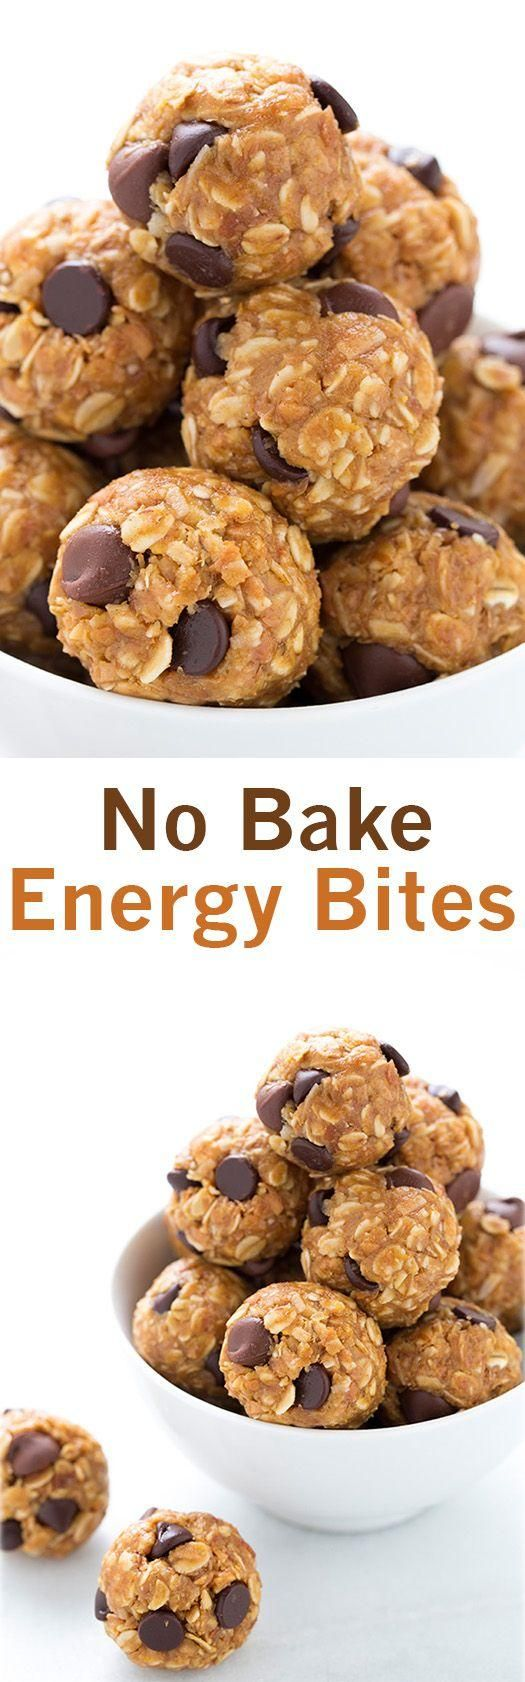 No Bake Energy Bites - these are the best snack EVER, and they're healthy! I make them all the time!                                                                                                                                                      More